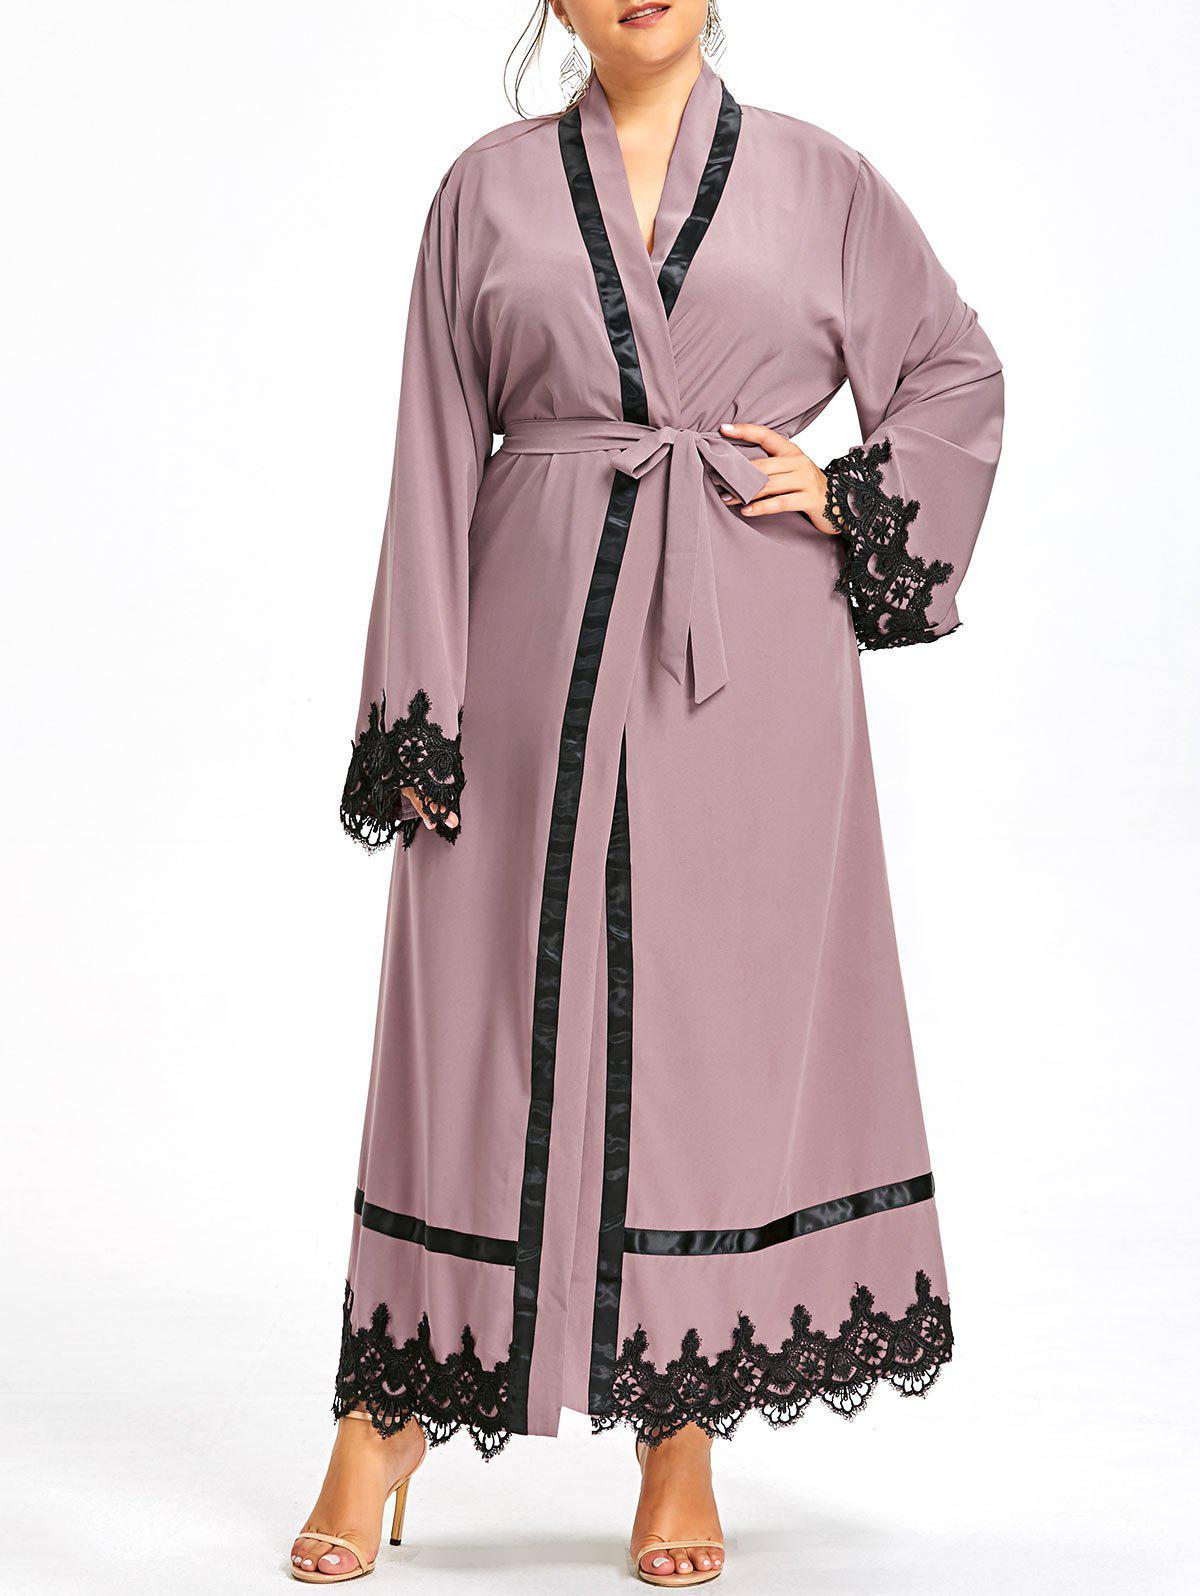 Plus Size Lace Panel Maxi Robe Coat with BeltWOMEN<br><br>Size: 5XL; Color: CAMEO; Clothes Type: Trench; Material: Cotton Blends,Polyester; Type: Slim; Shirt Length: X-Long; Sleeve Length: Full; Collar: Collarless; Pattern Type: Solid; Embellishment: Lace,Spliced; Style: Fashion; Season: Fall,Spring,Winter; With Belt: Yes; Weight: 0.5500kg; Package Contents: 1 x Coat;